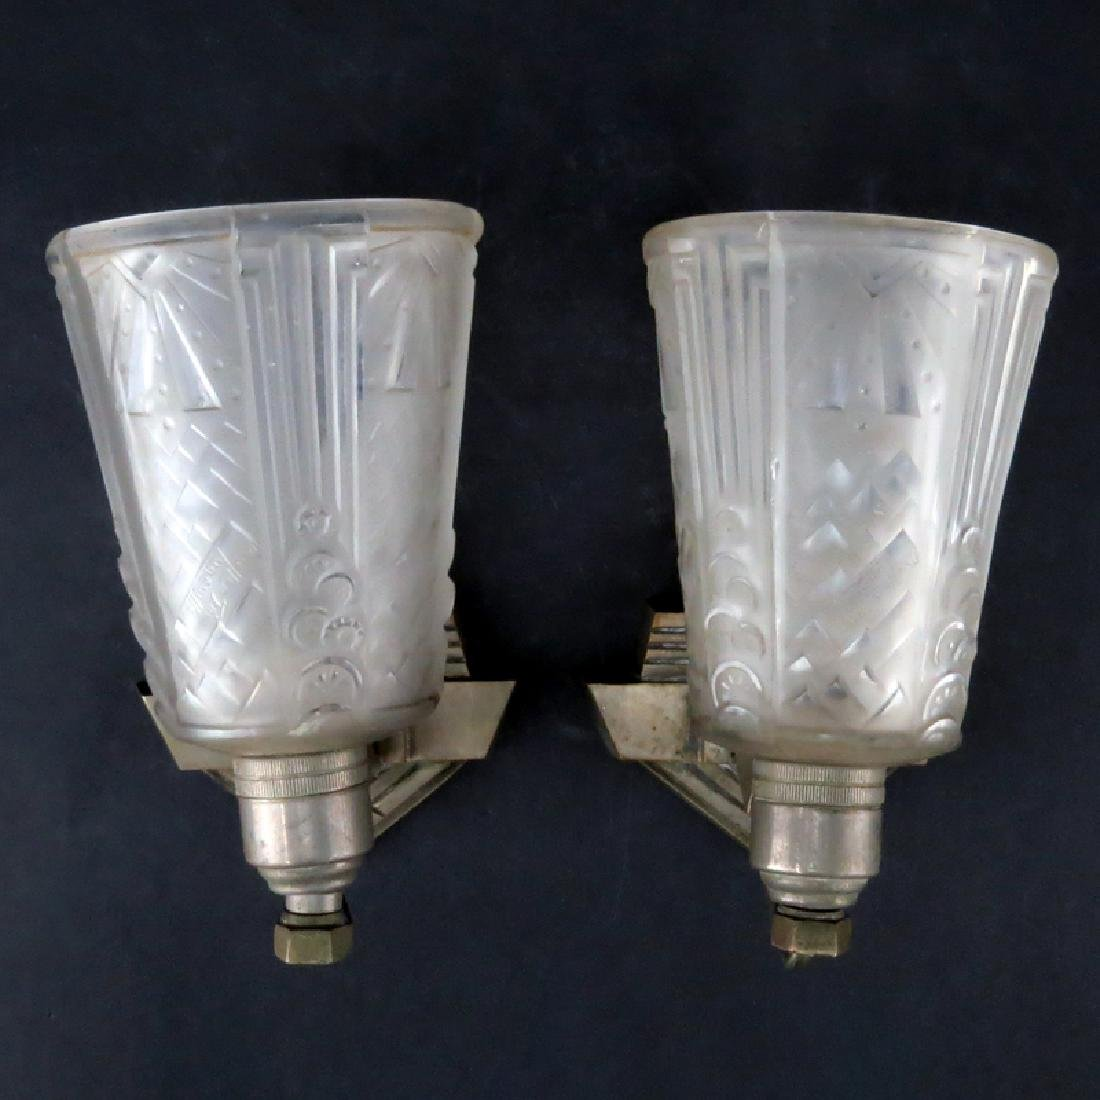 Pair of French Art Deco Sabino Style Frosted Glass Wall